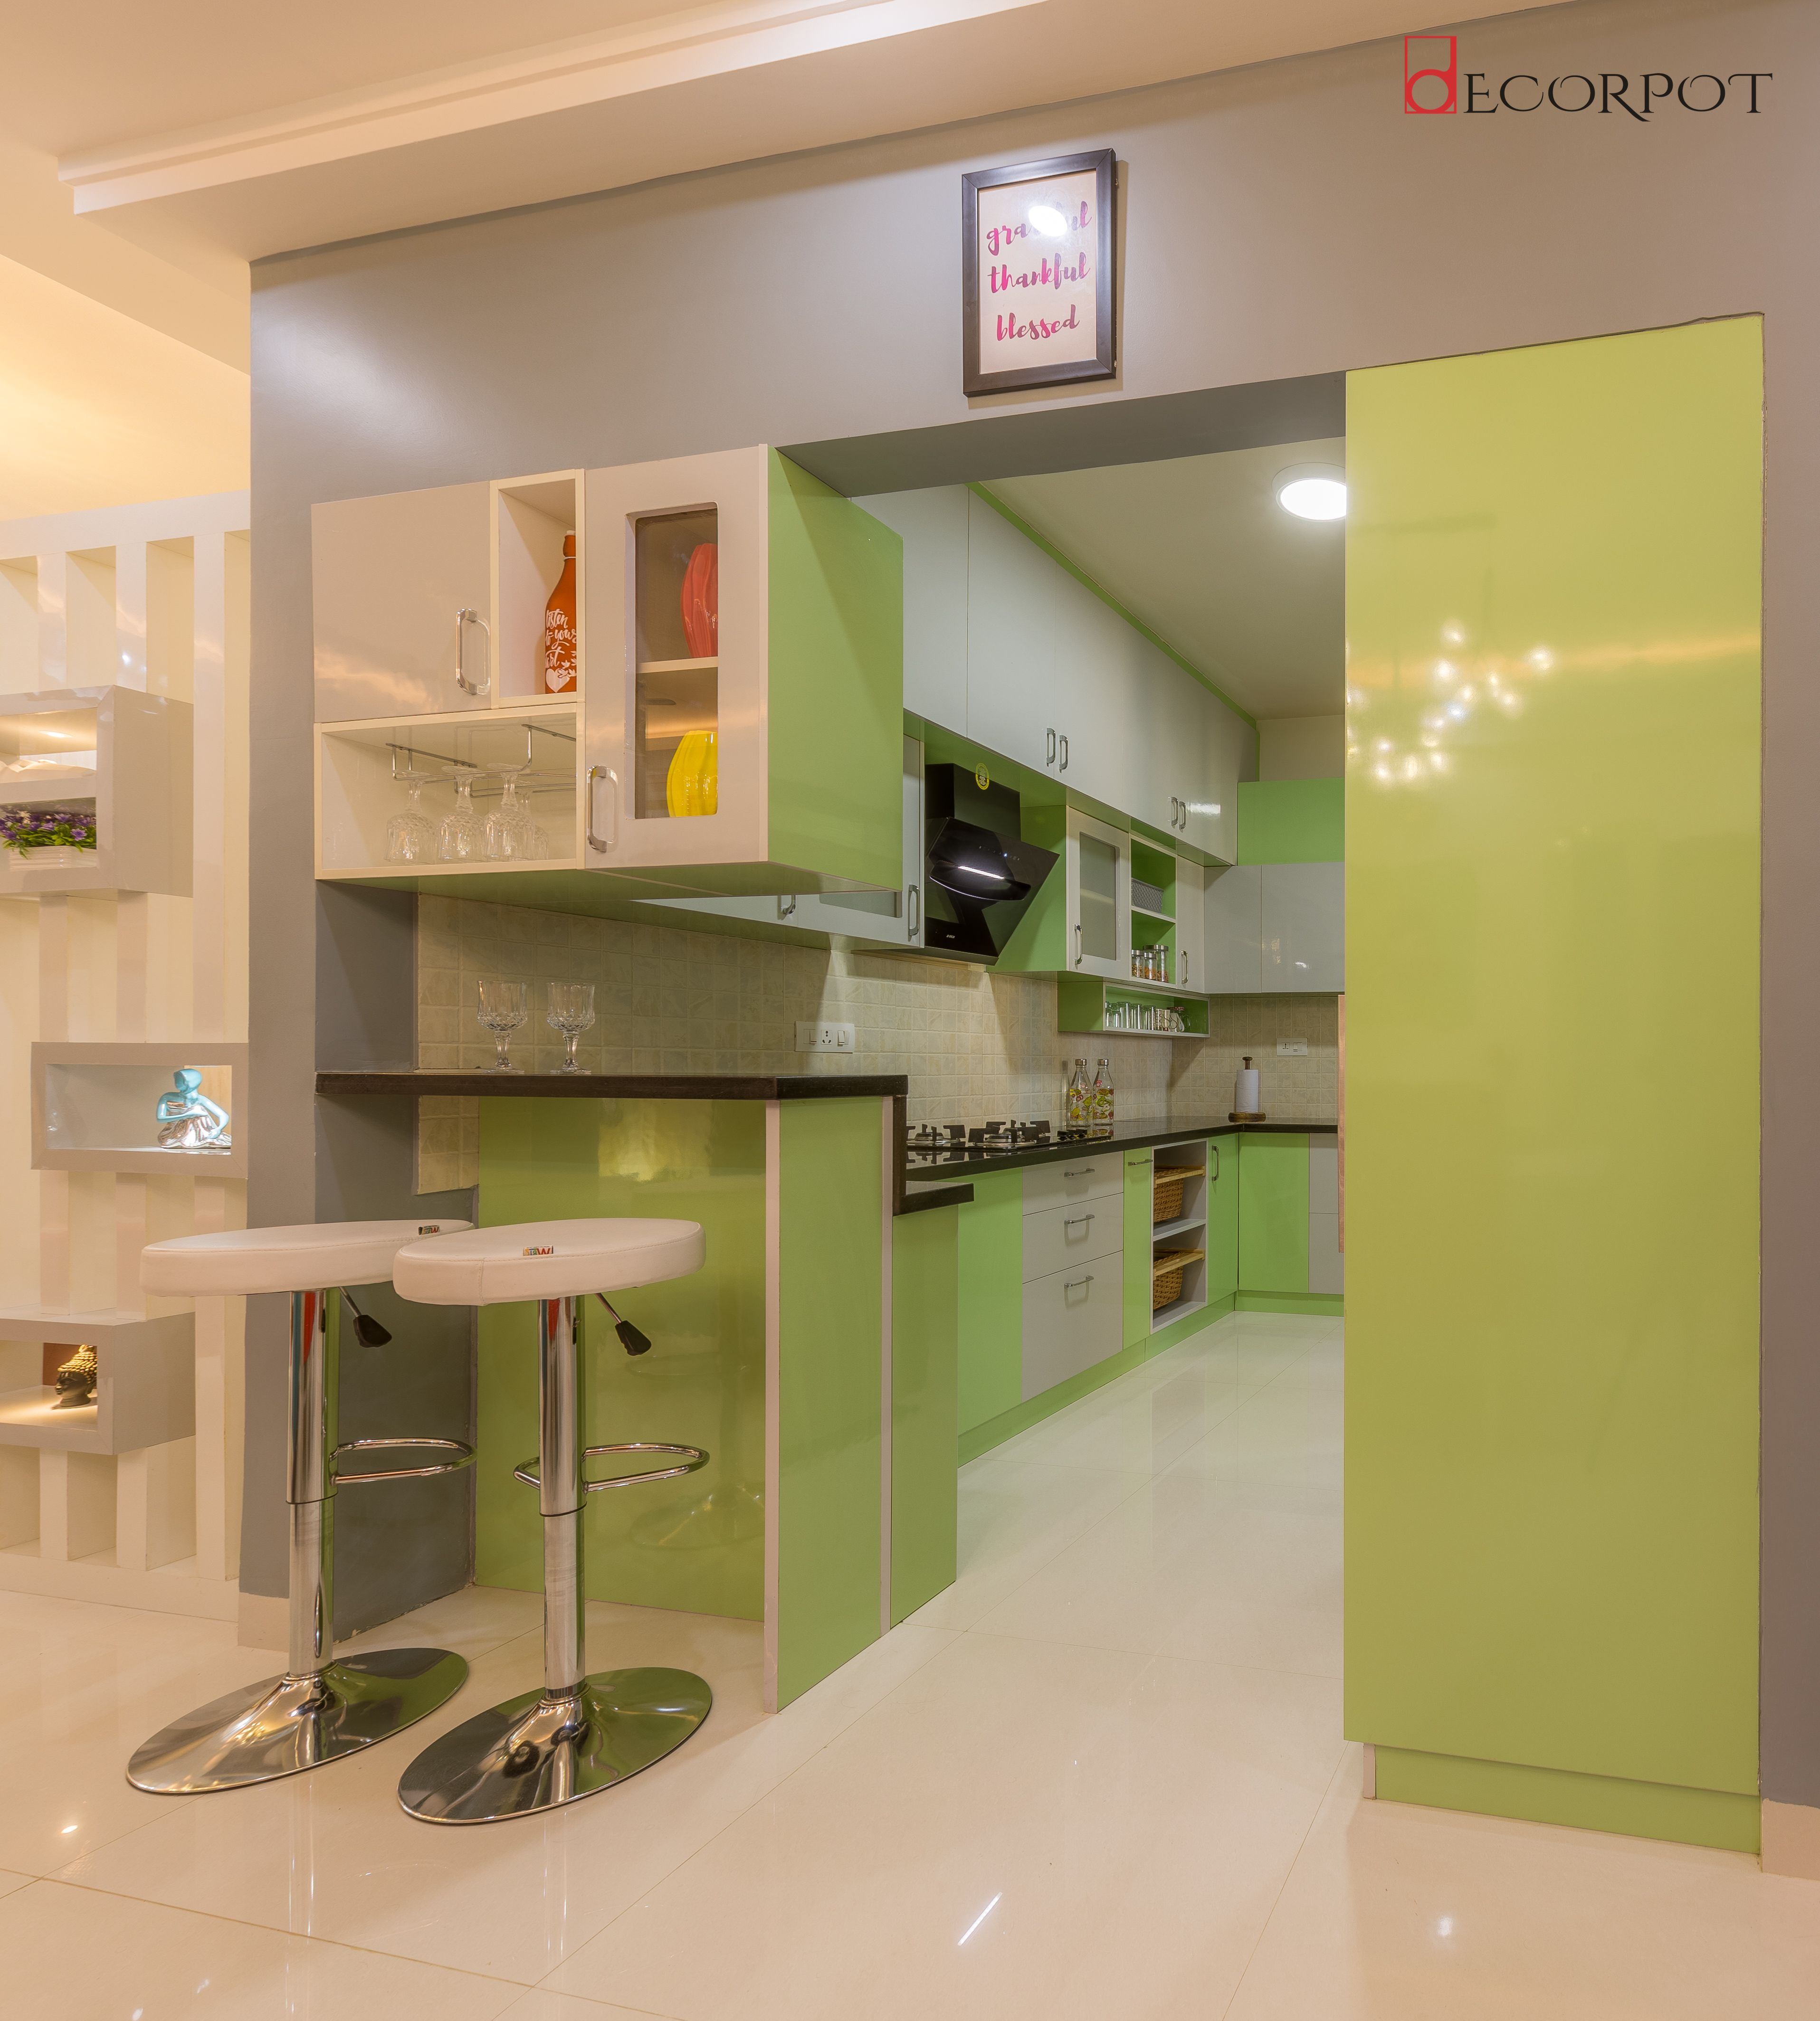 The image is of Decorhome Kitchen at Republic of Whitefield, Bangalore